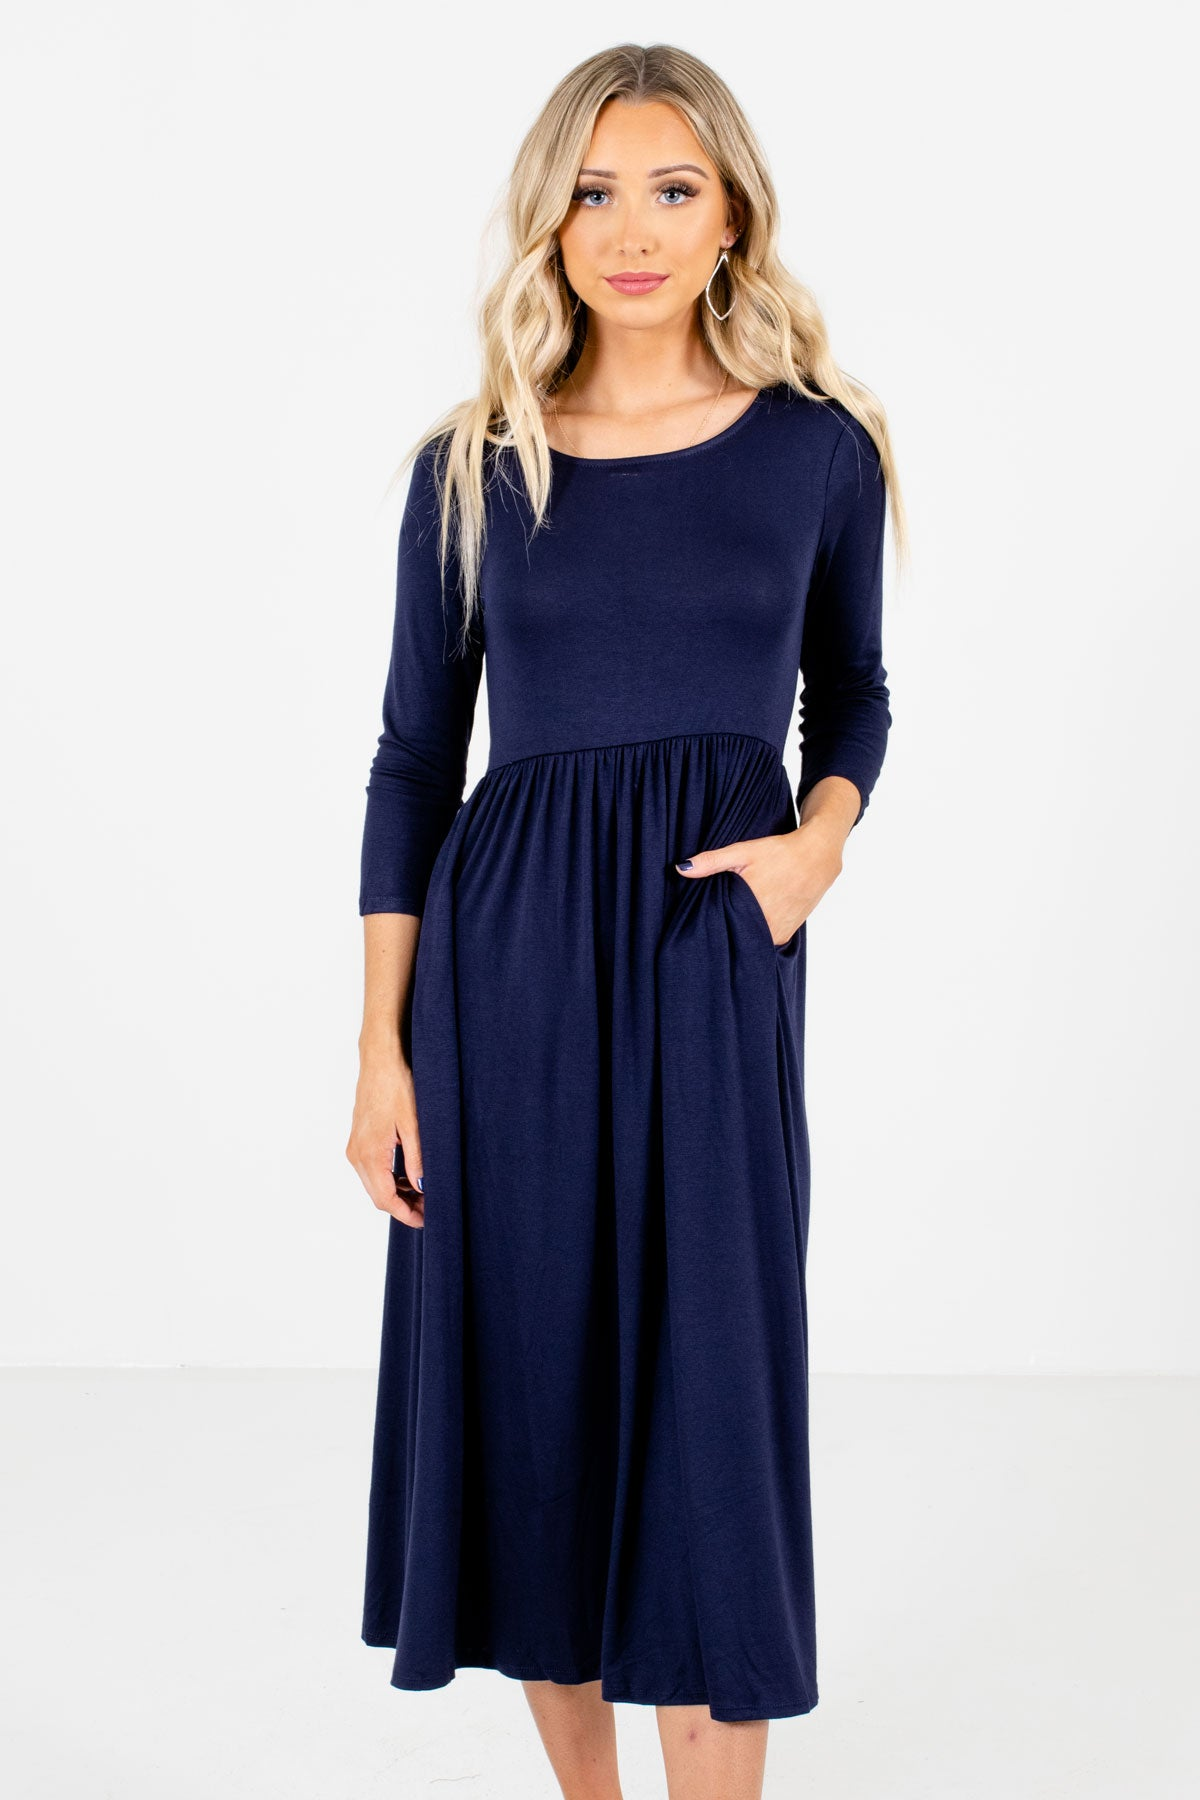 Navy Blue ¾ Length Sleeve Boutique Midi Dresses for Women